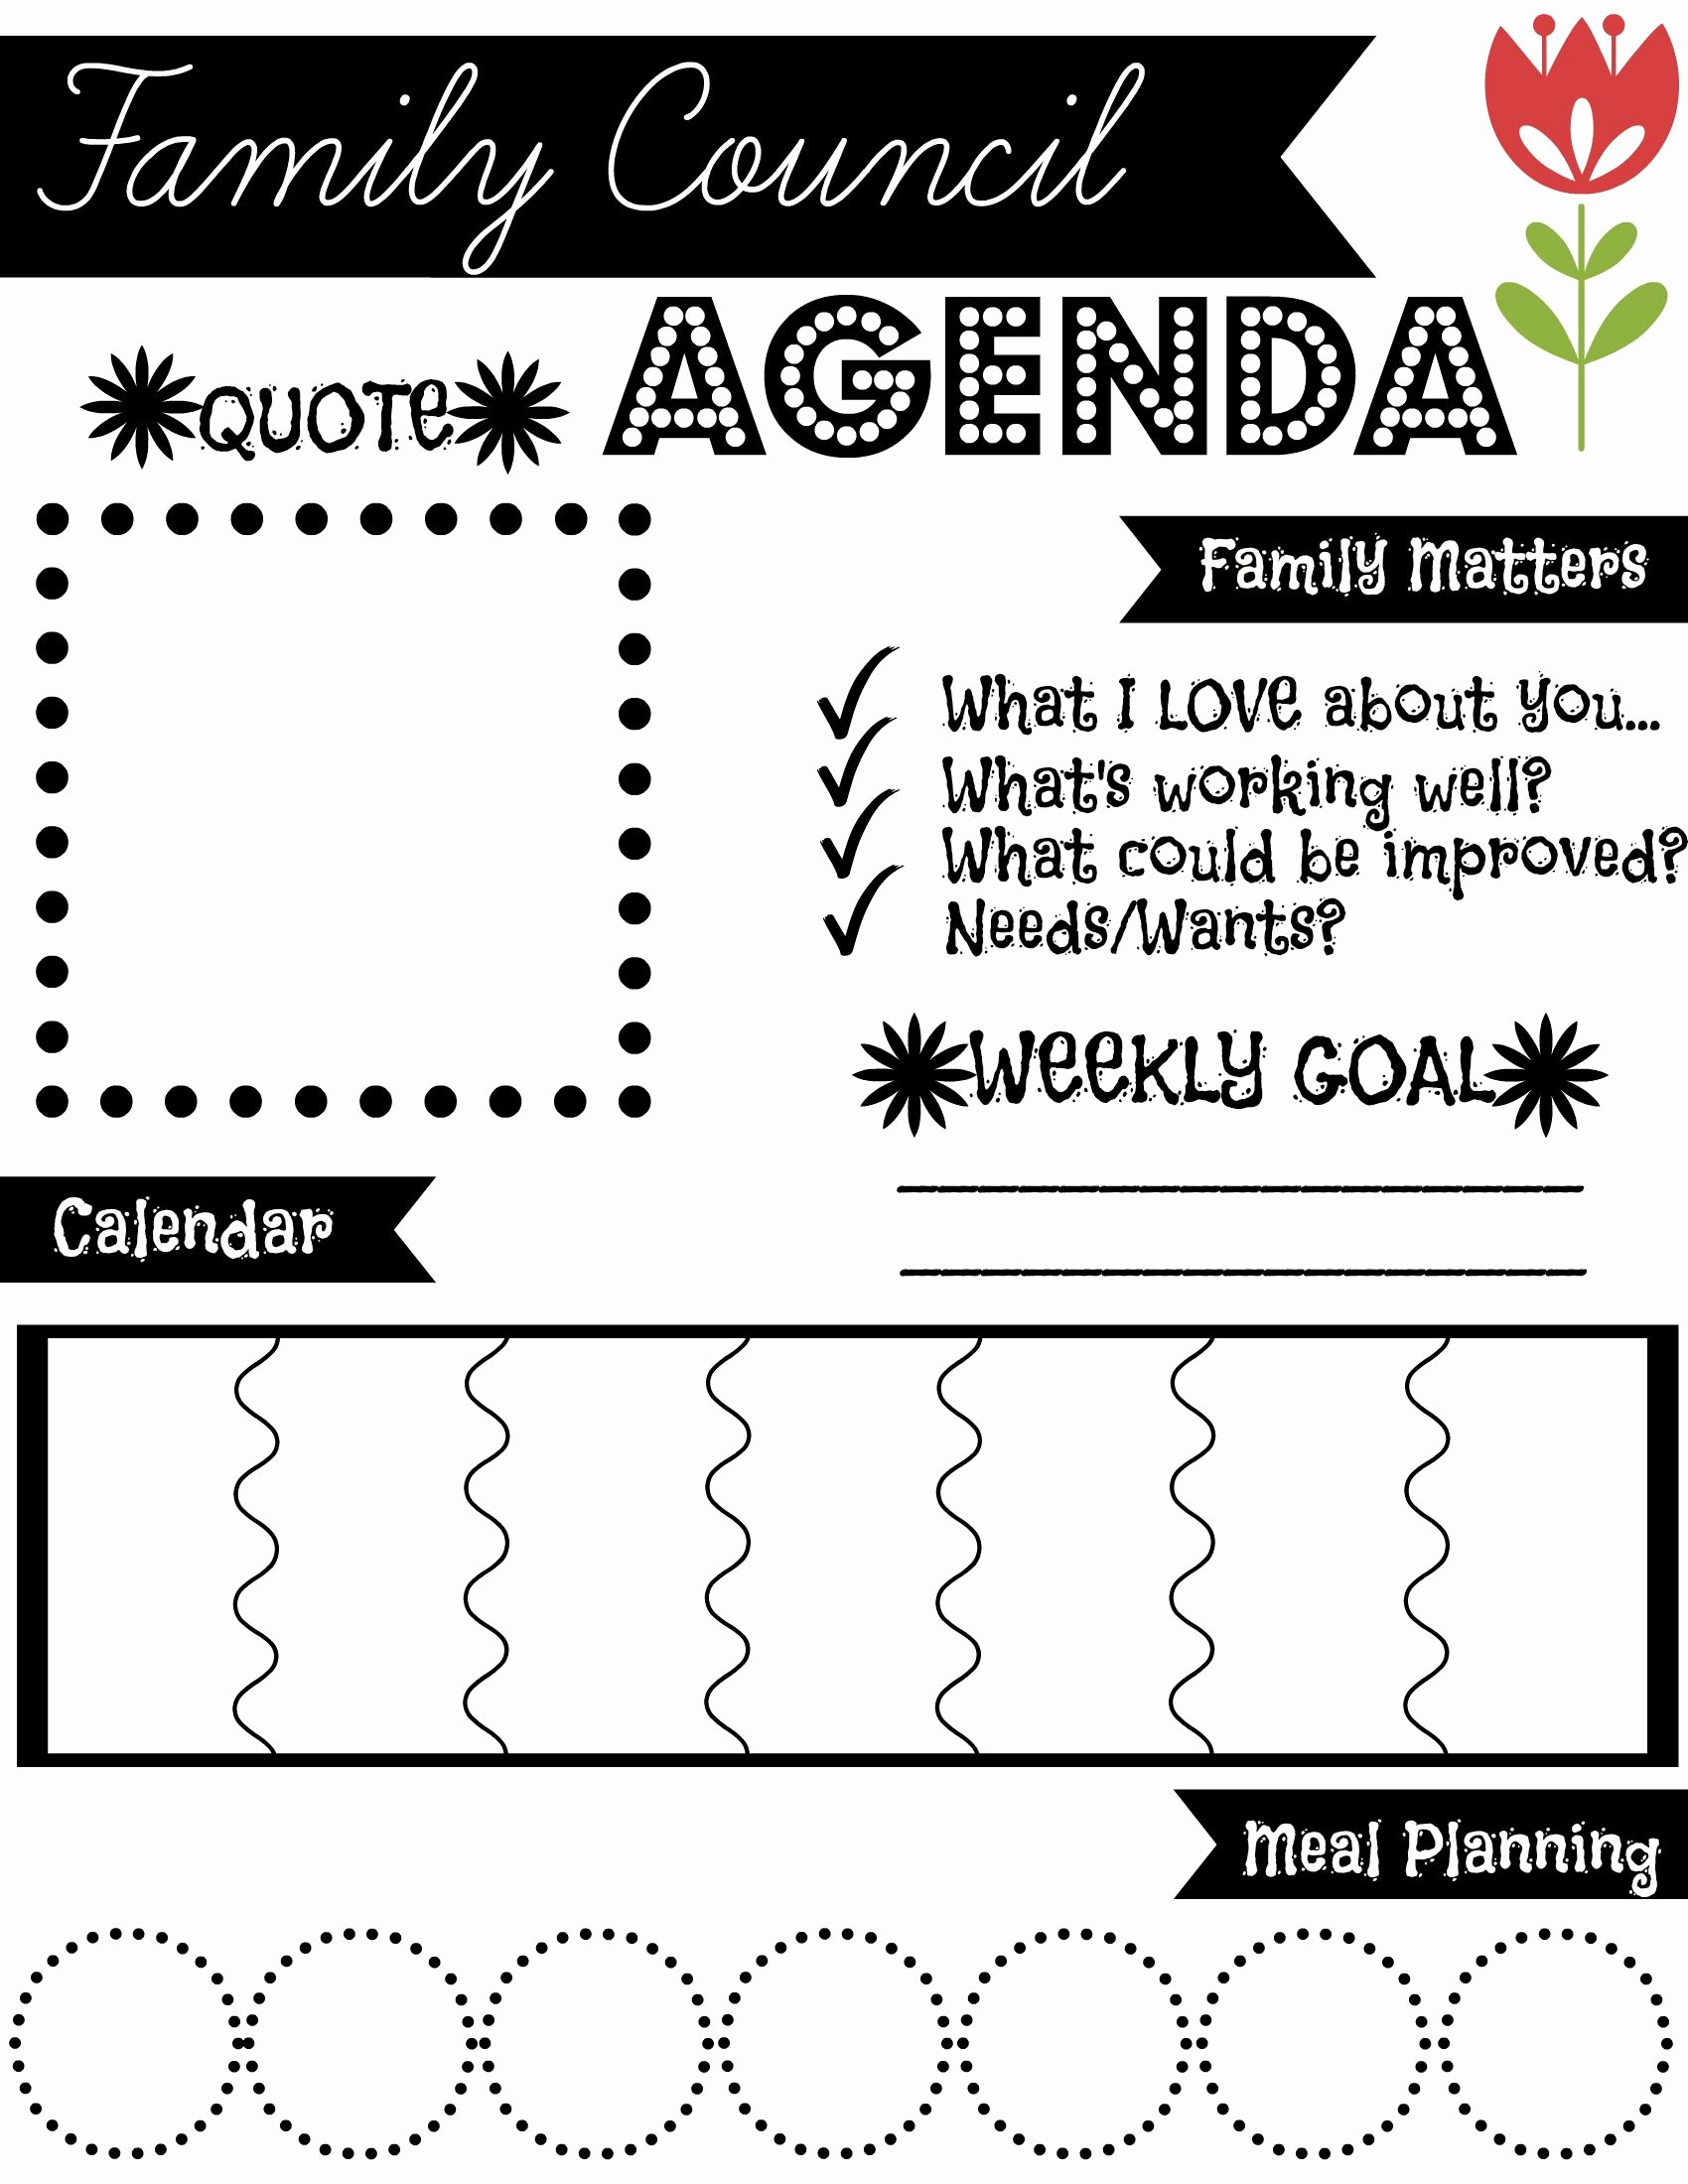 Family Meeting Agenda Templates Beautiful Family Council Agenda Find More Free Printables at Dearestanddarling and On